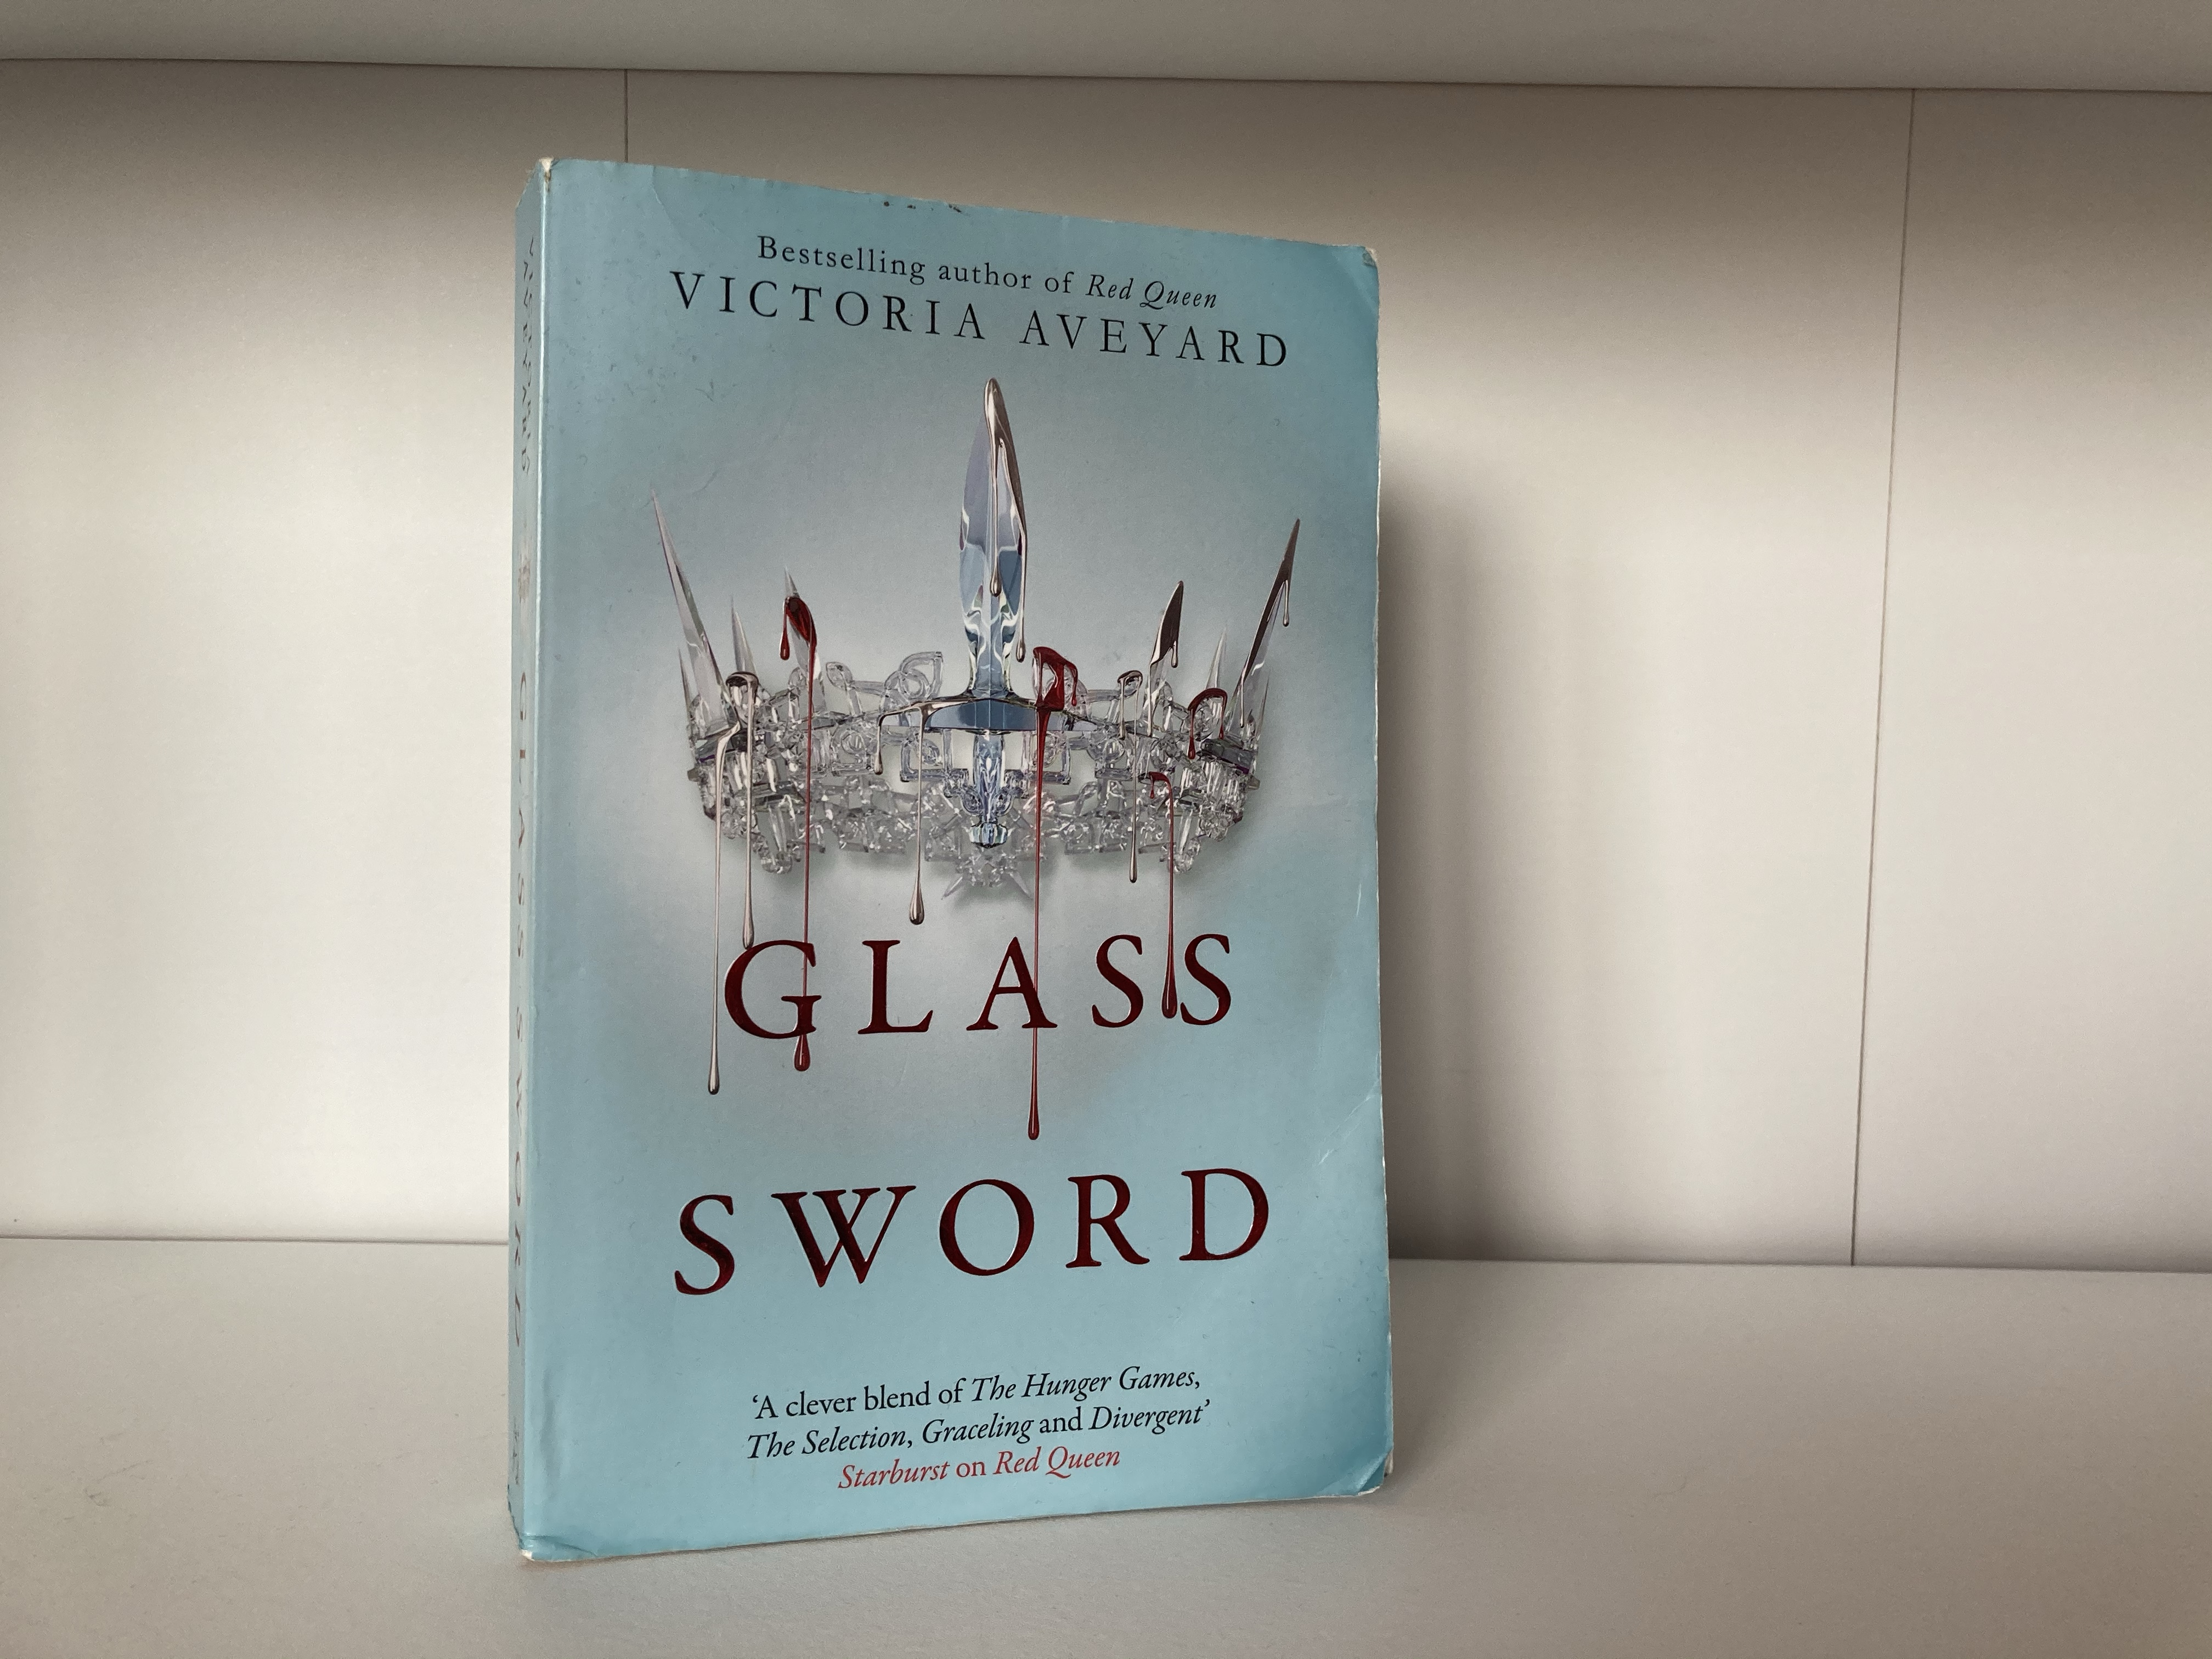 The cover of Glass Sword by Victoria Aveyard